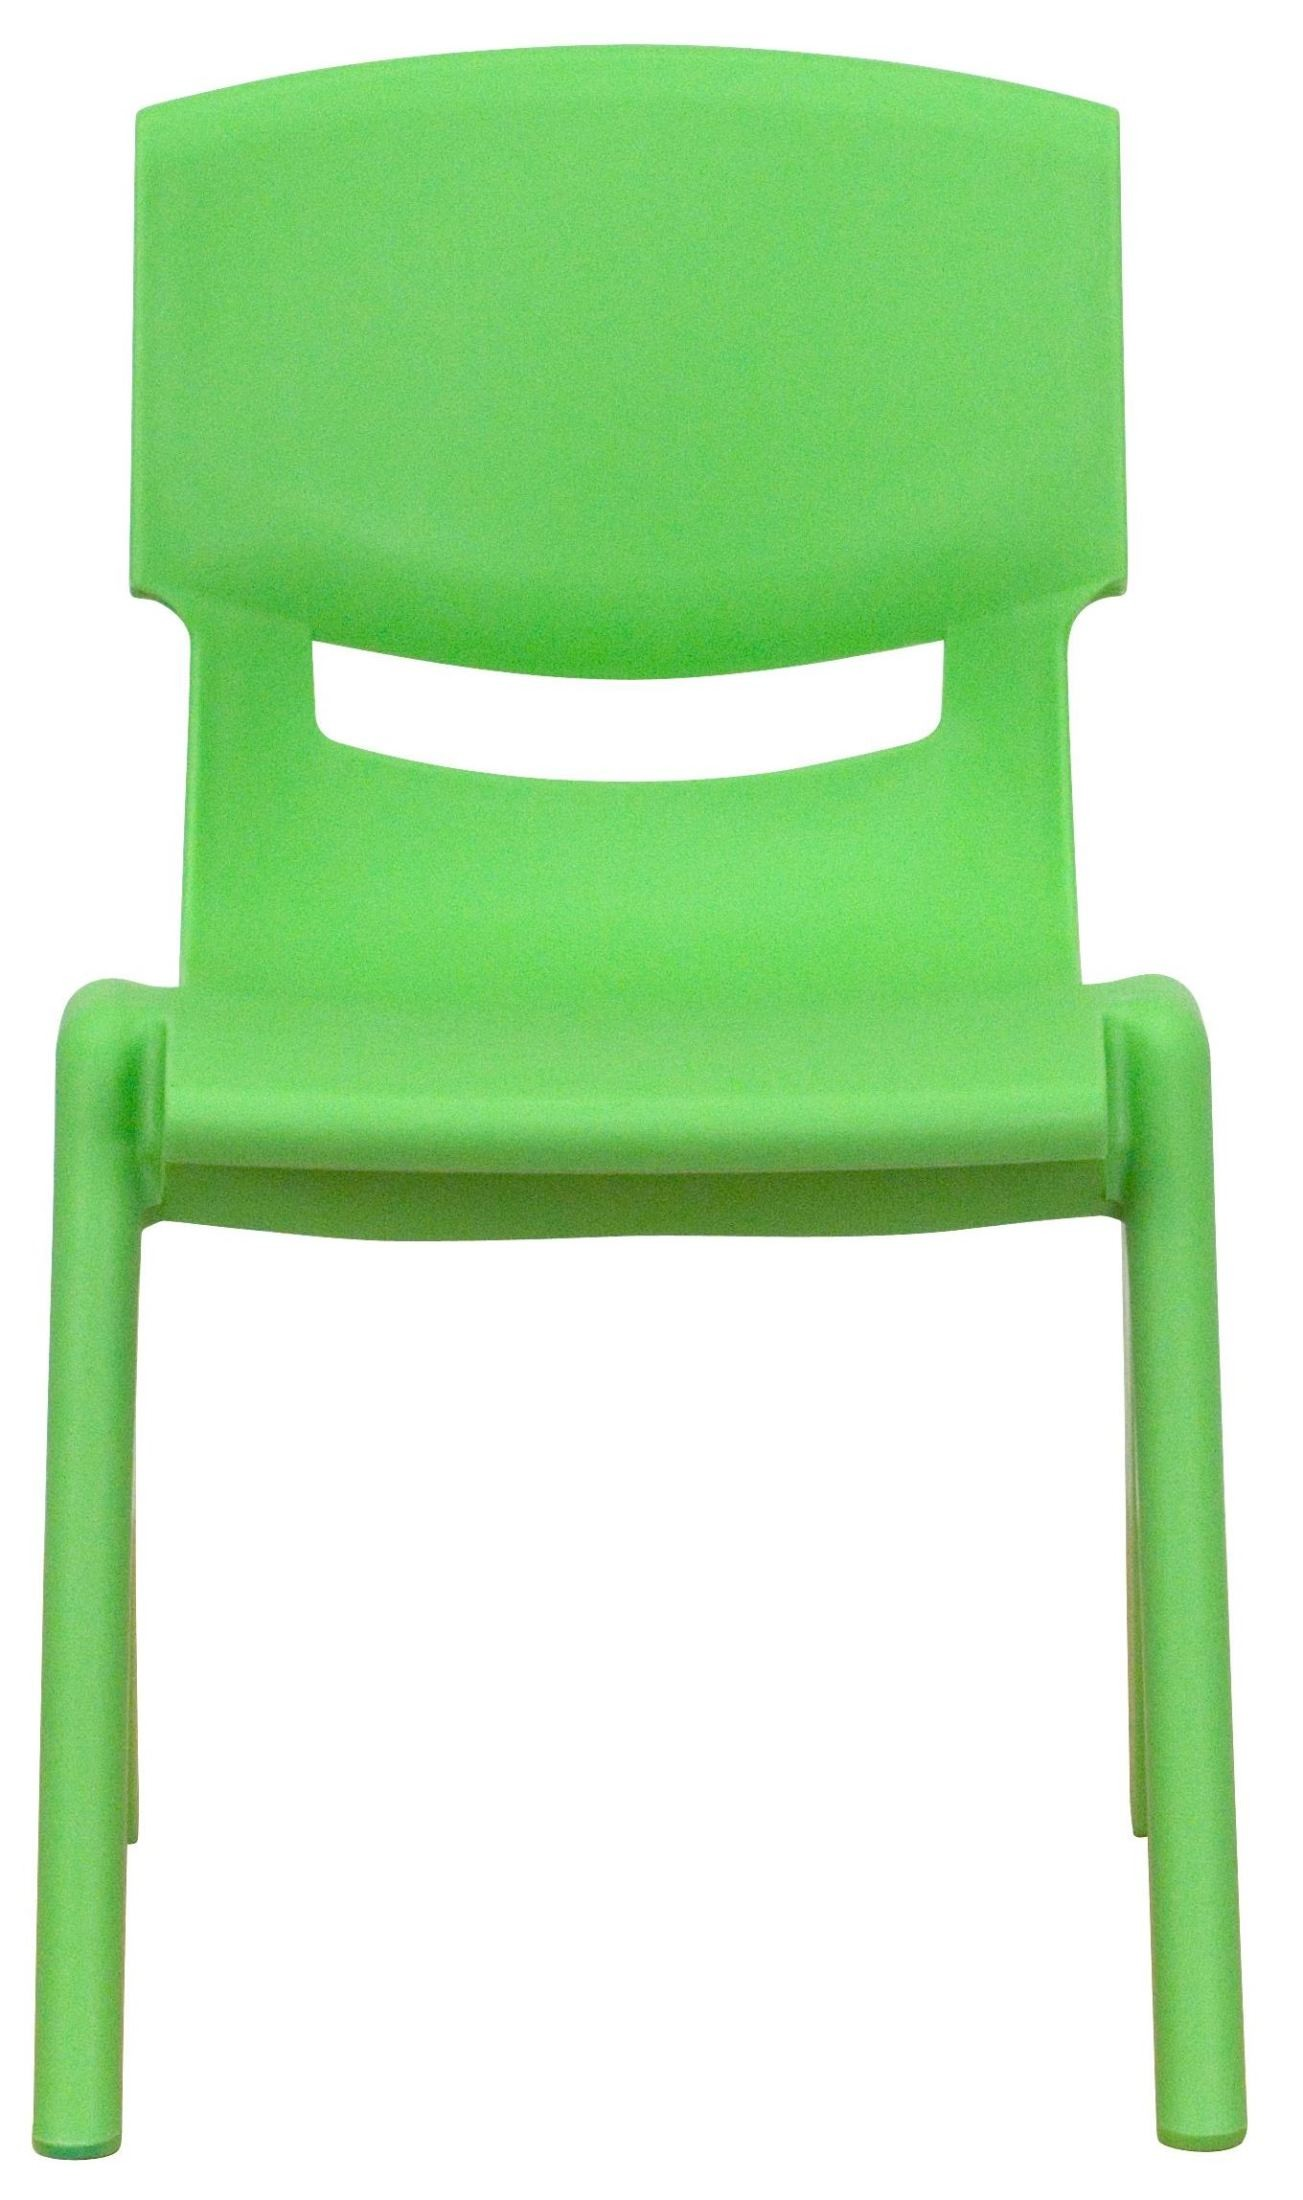 stackable resin chairs green where to buy chair covers in montreal 22 quoth plastic school from renegade